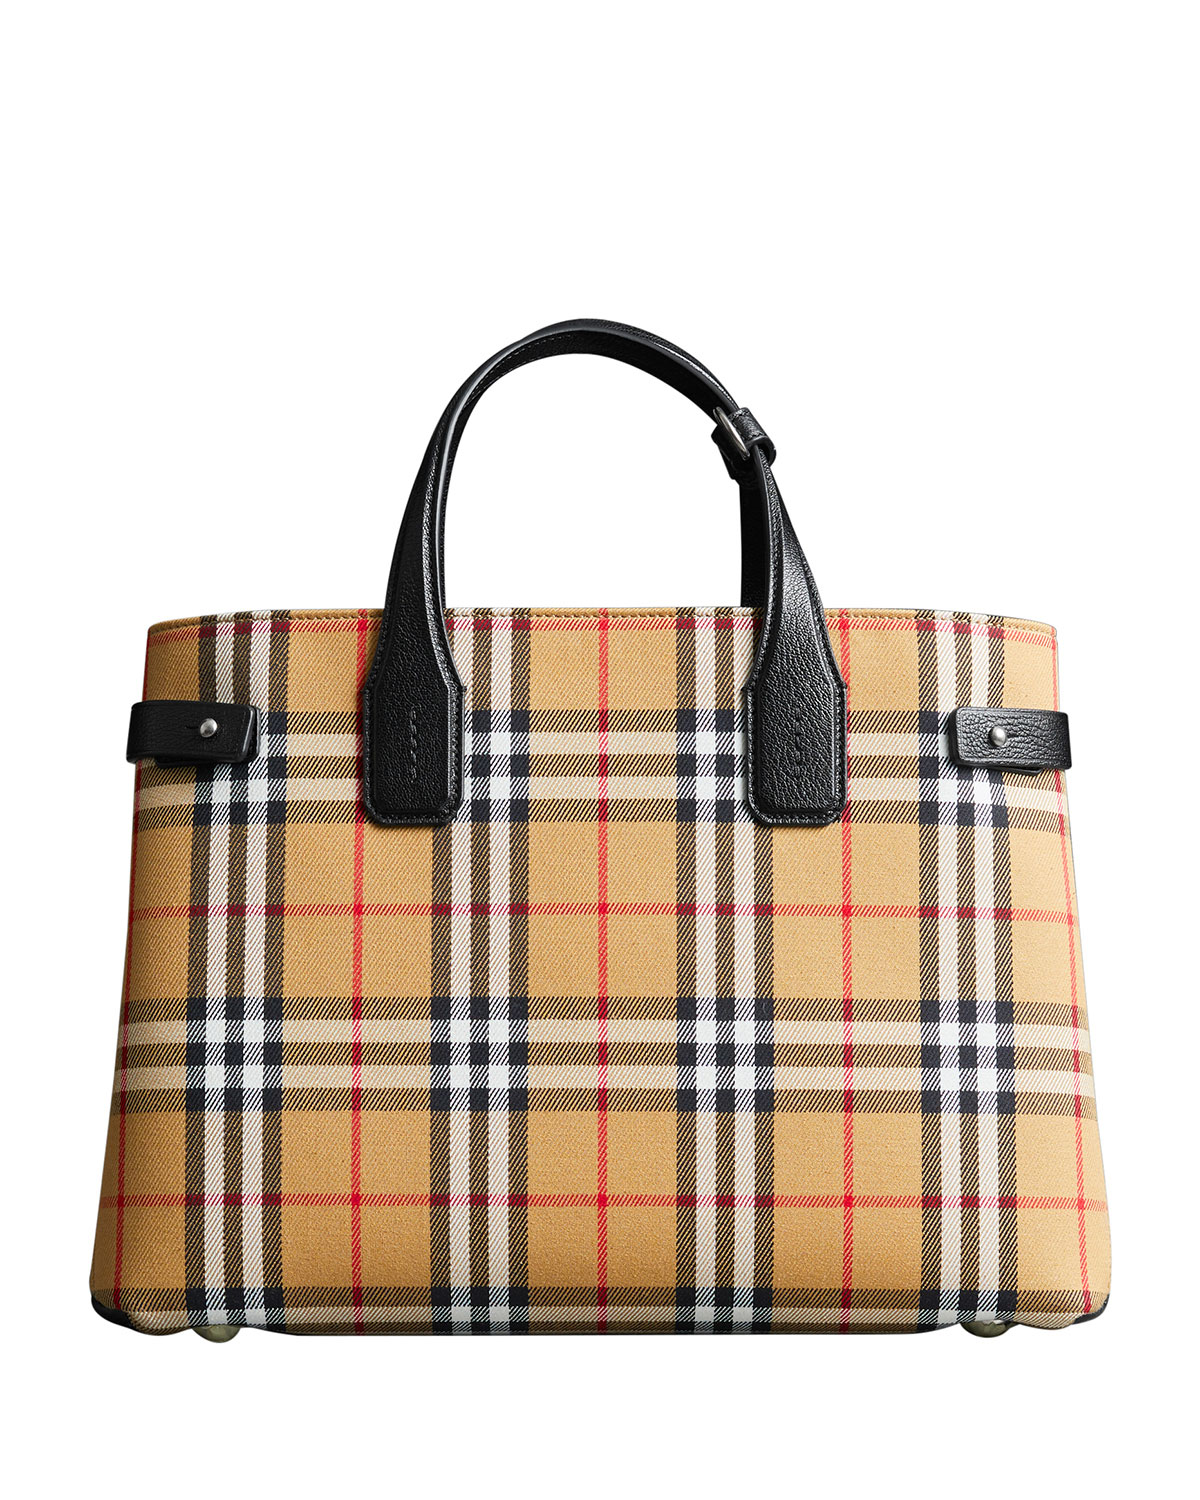 f528b8cd4ac9ff Burberry Vintage Check Medium Banner Tote Bag | Neiman Marcus